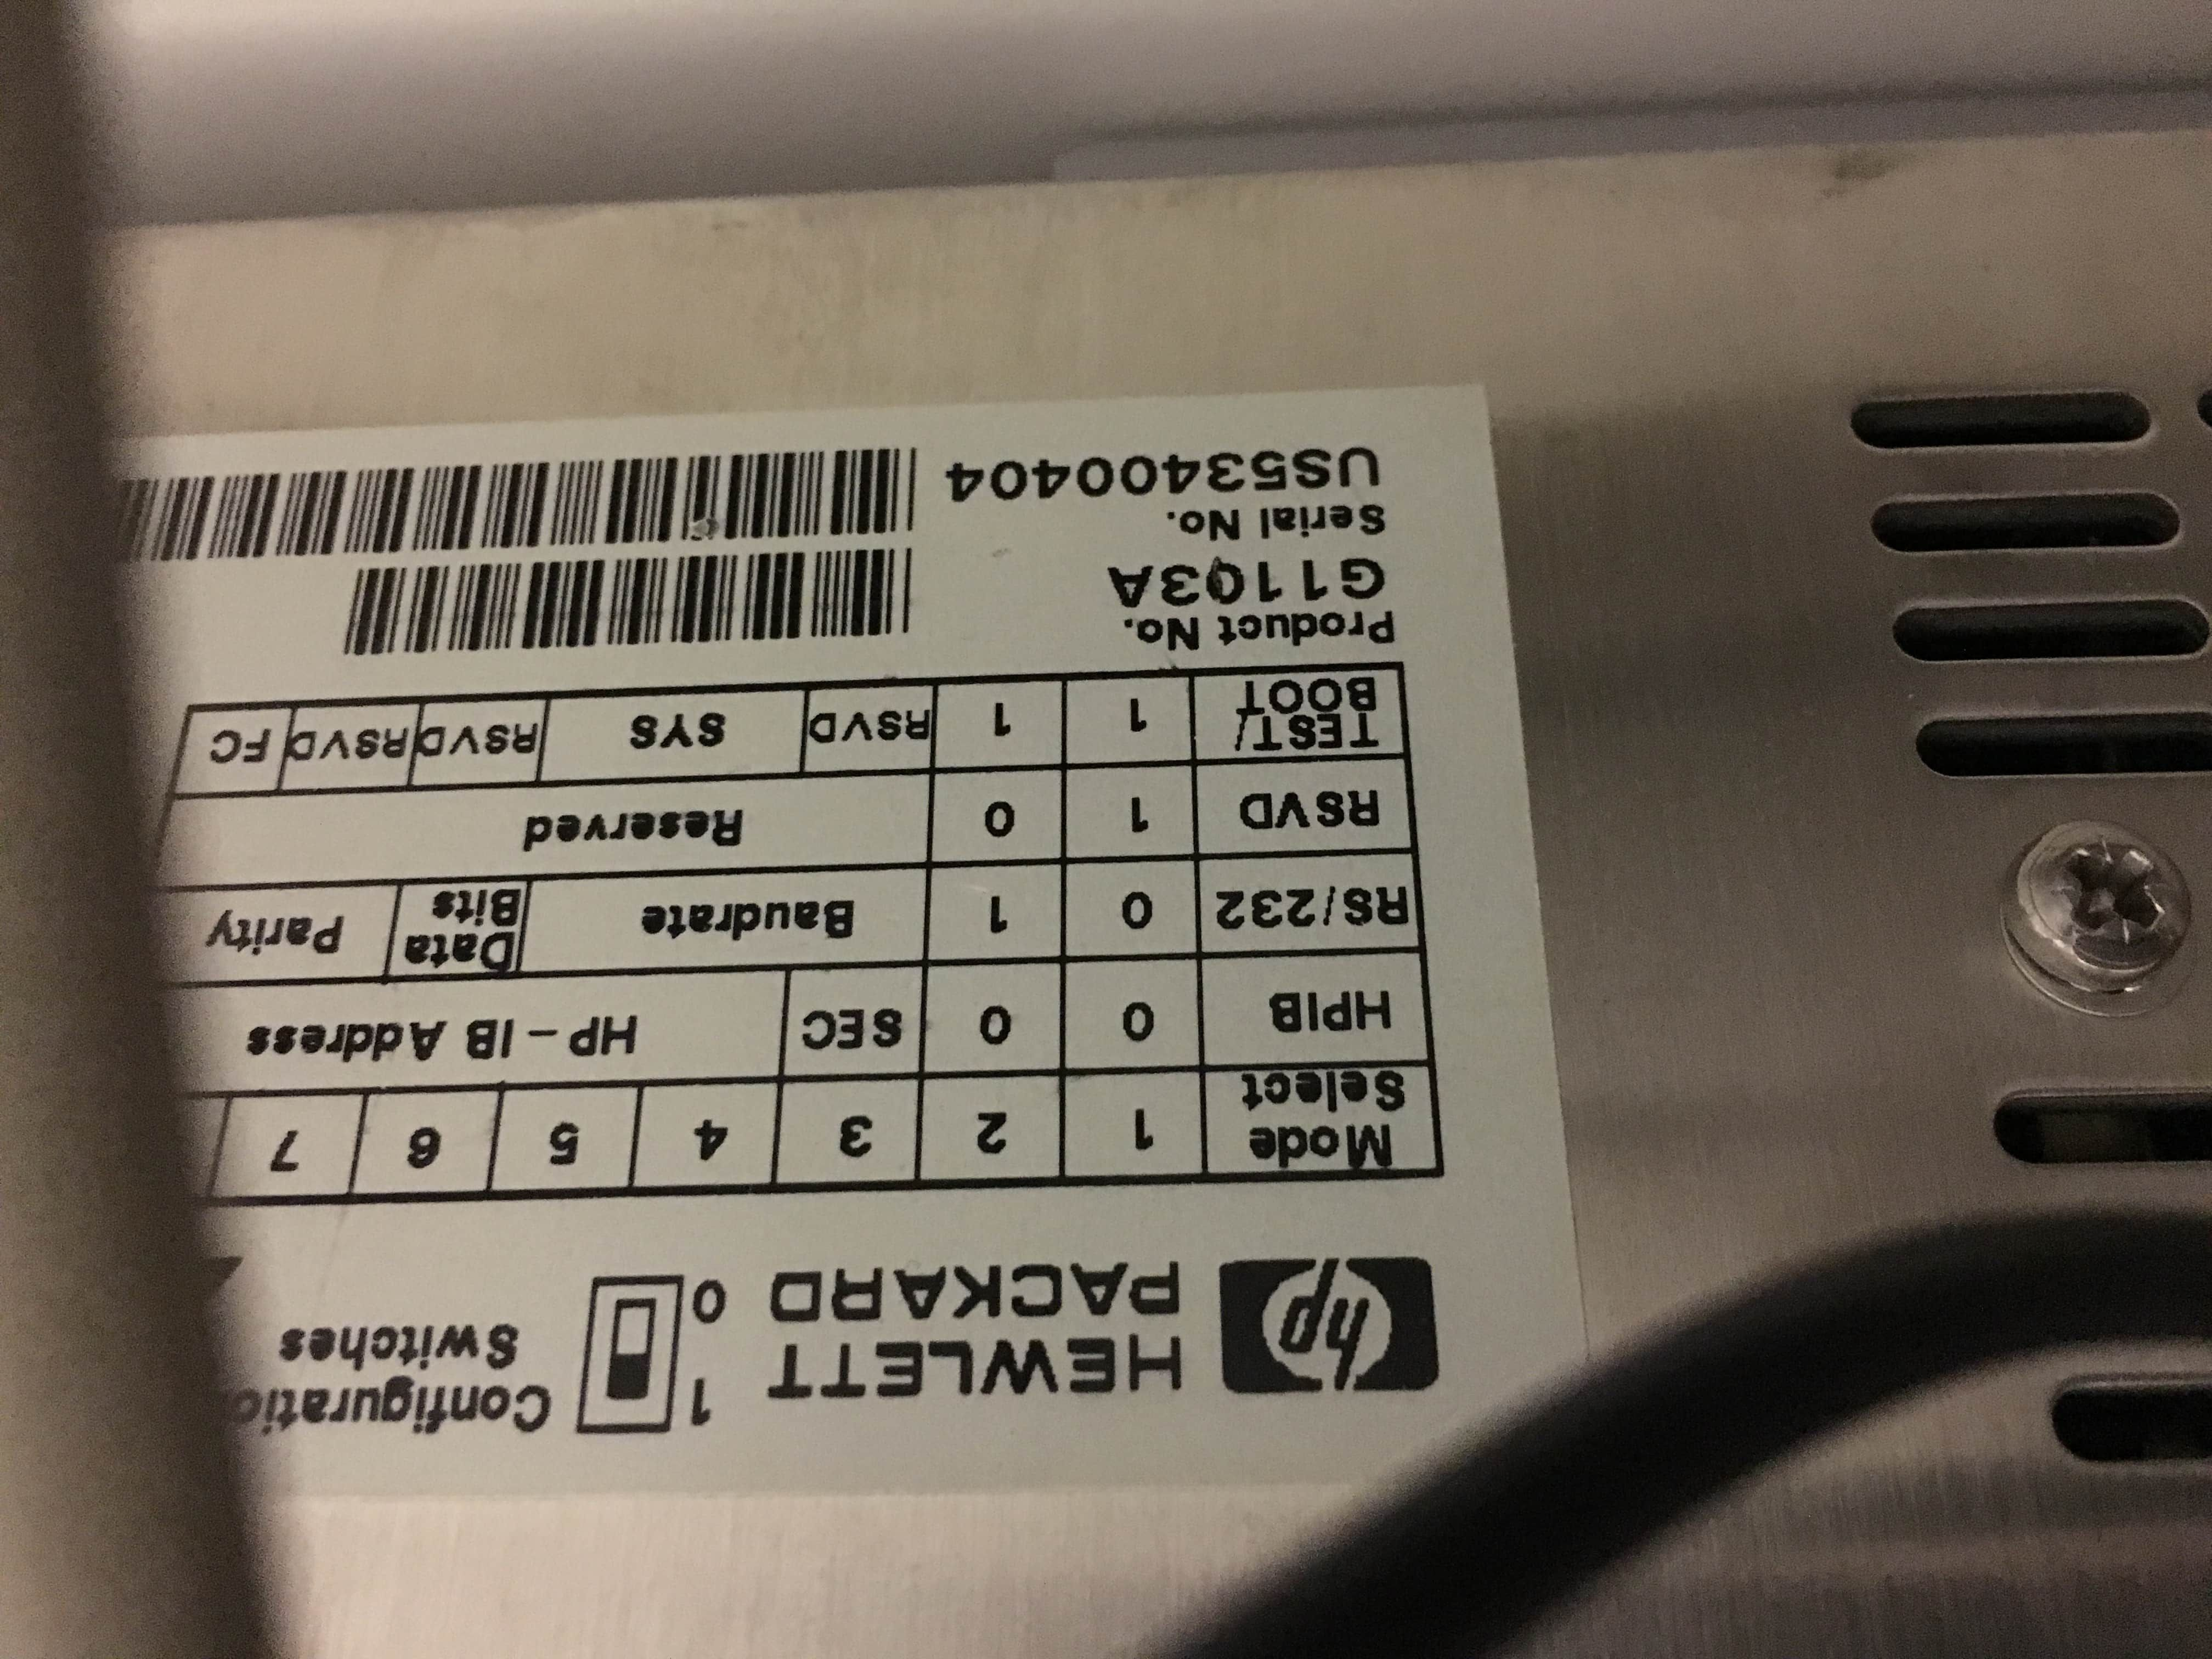 HP/Agilent 8453 UV/VIS with computer - just out of a lab